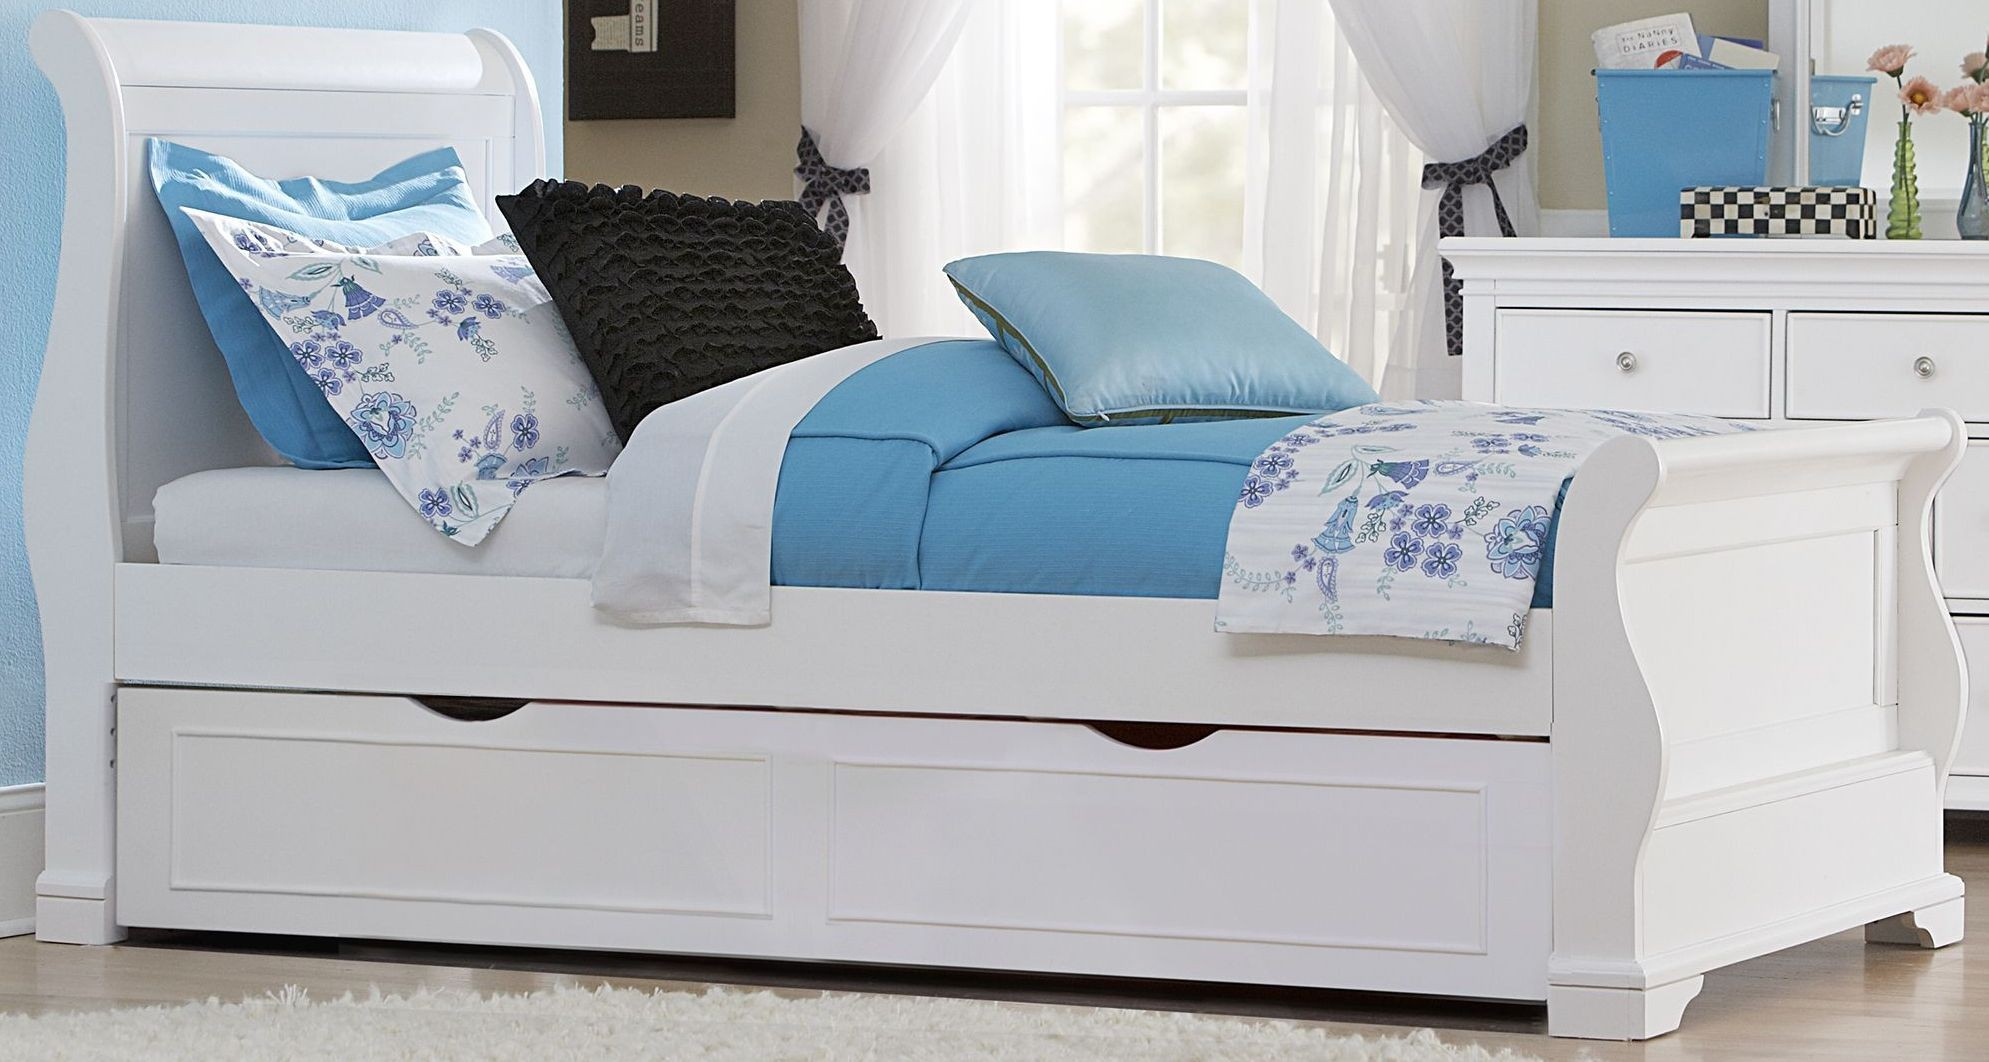 Walnut street white riley twin sleigh bed with trundle from ne kids coleman furniture White twin trundle bedroom set